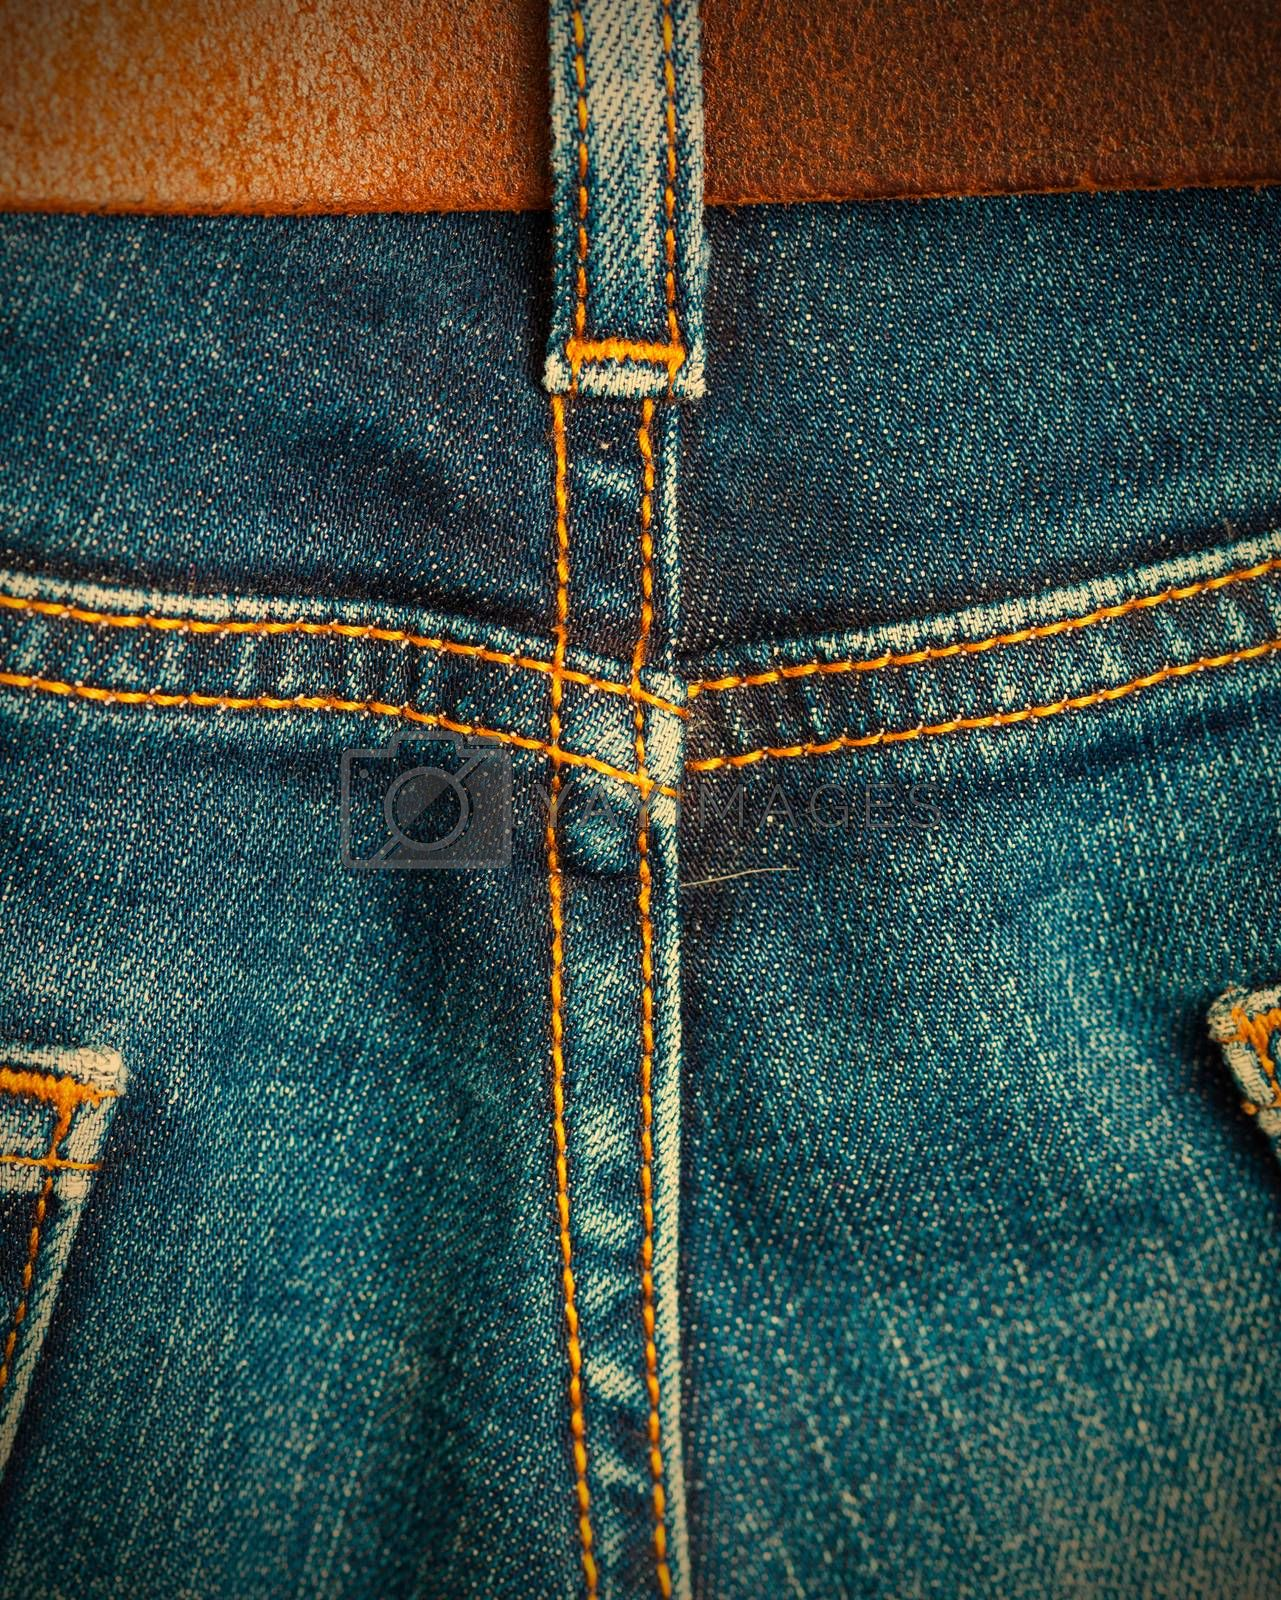 Royalty free image of ol blue denim with seams and leather belt  by Astroid